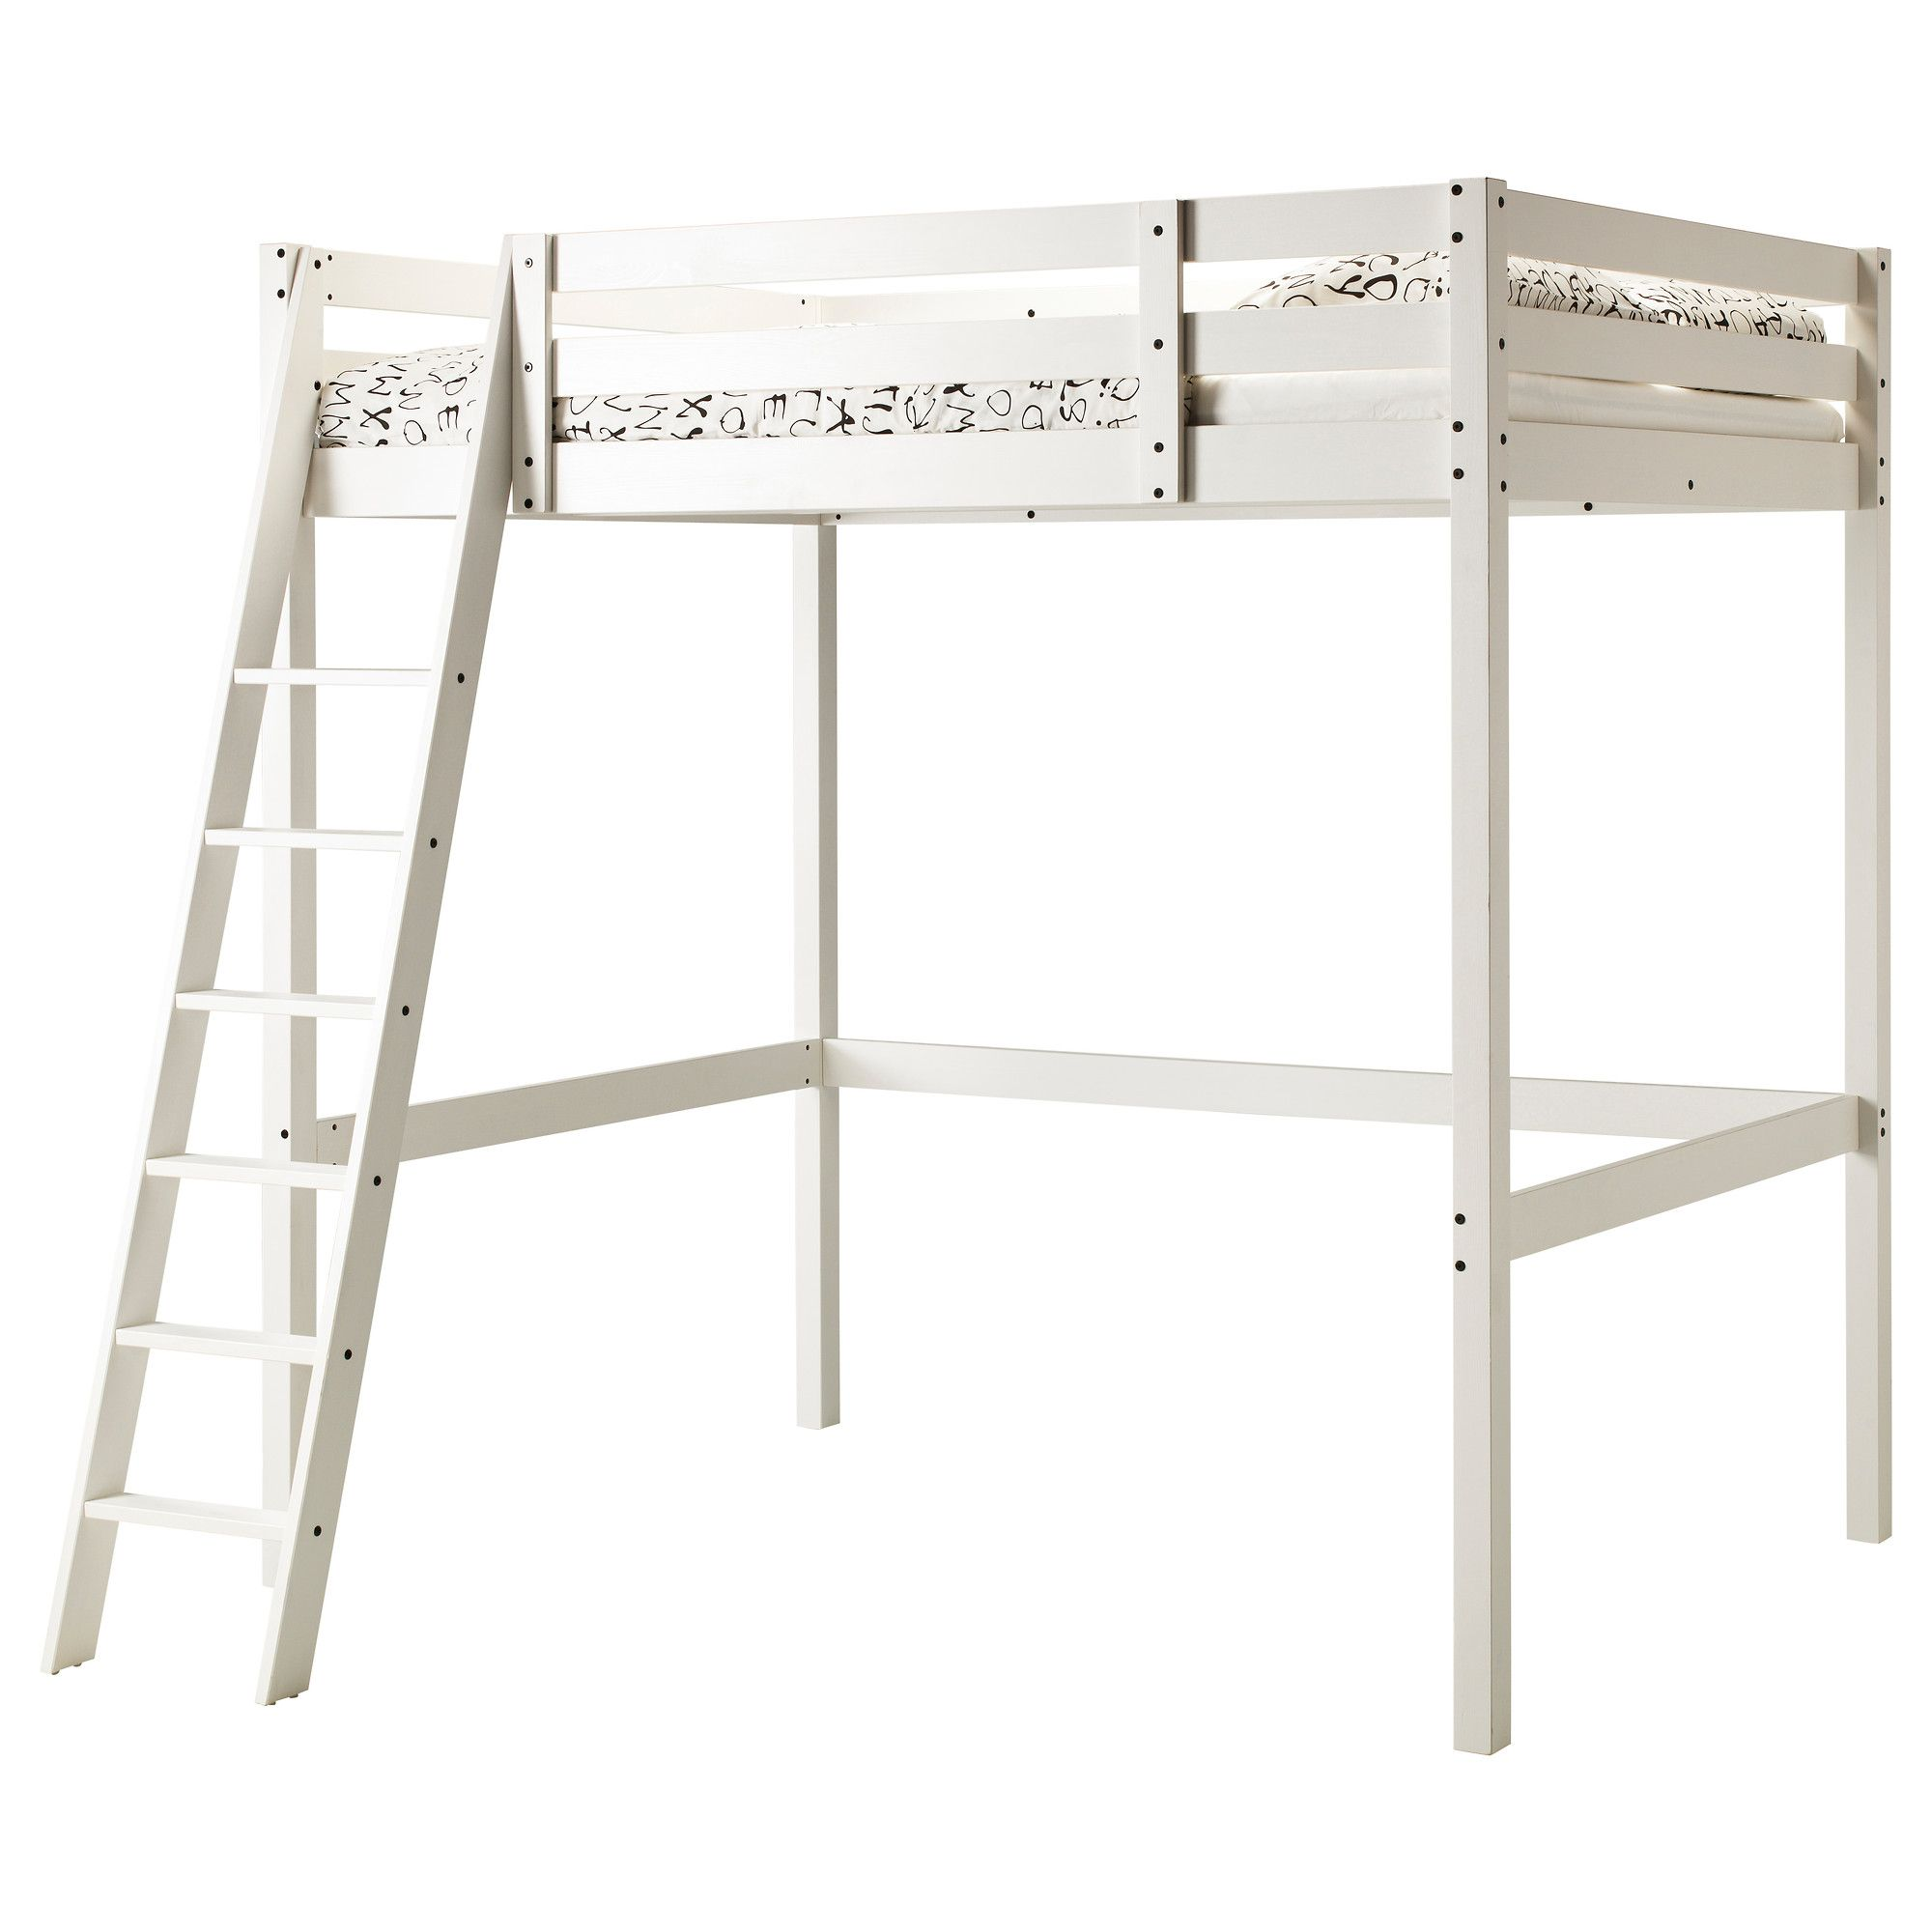 Loft bed with desk full size mattress  STORÅ Loft bed frame white stain  Loft bed frame White stain and